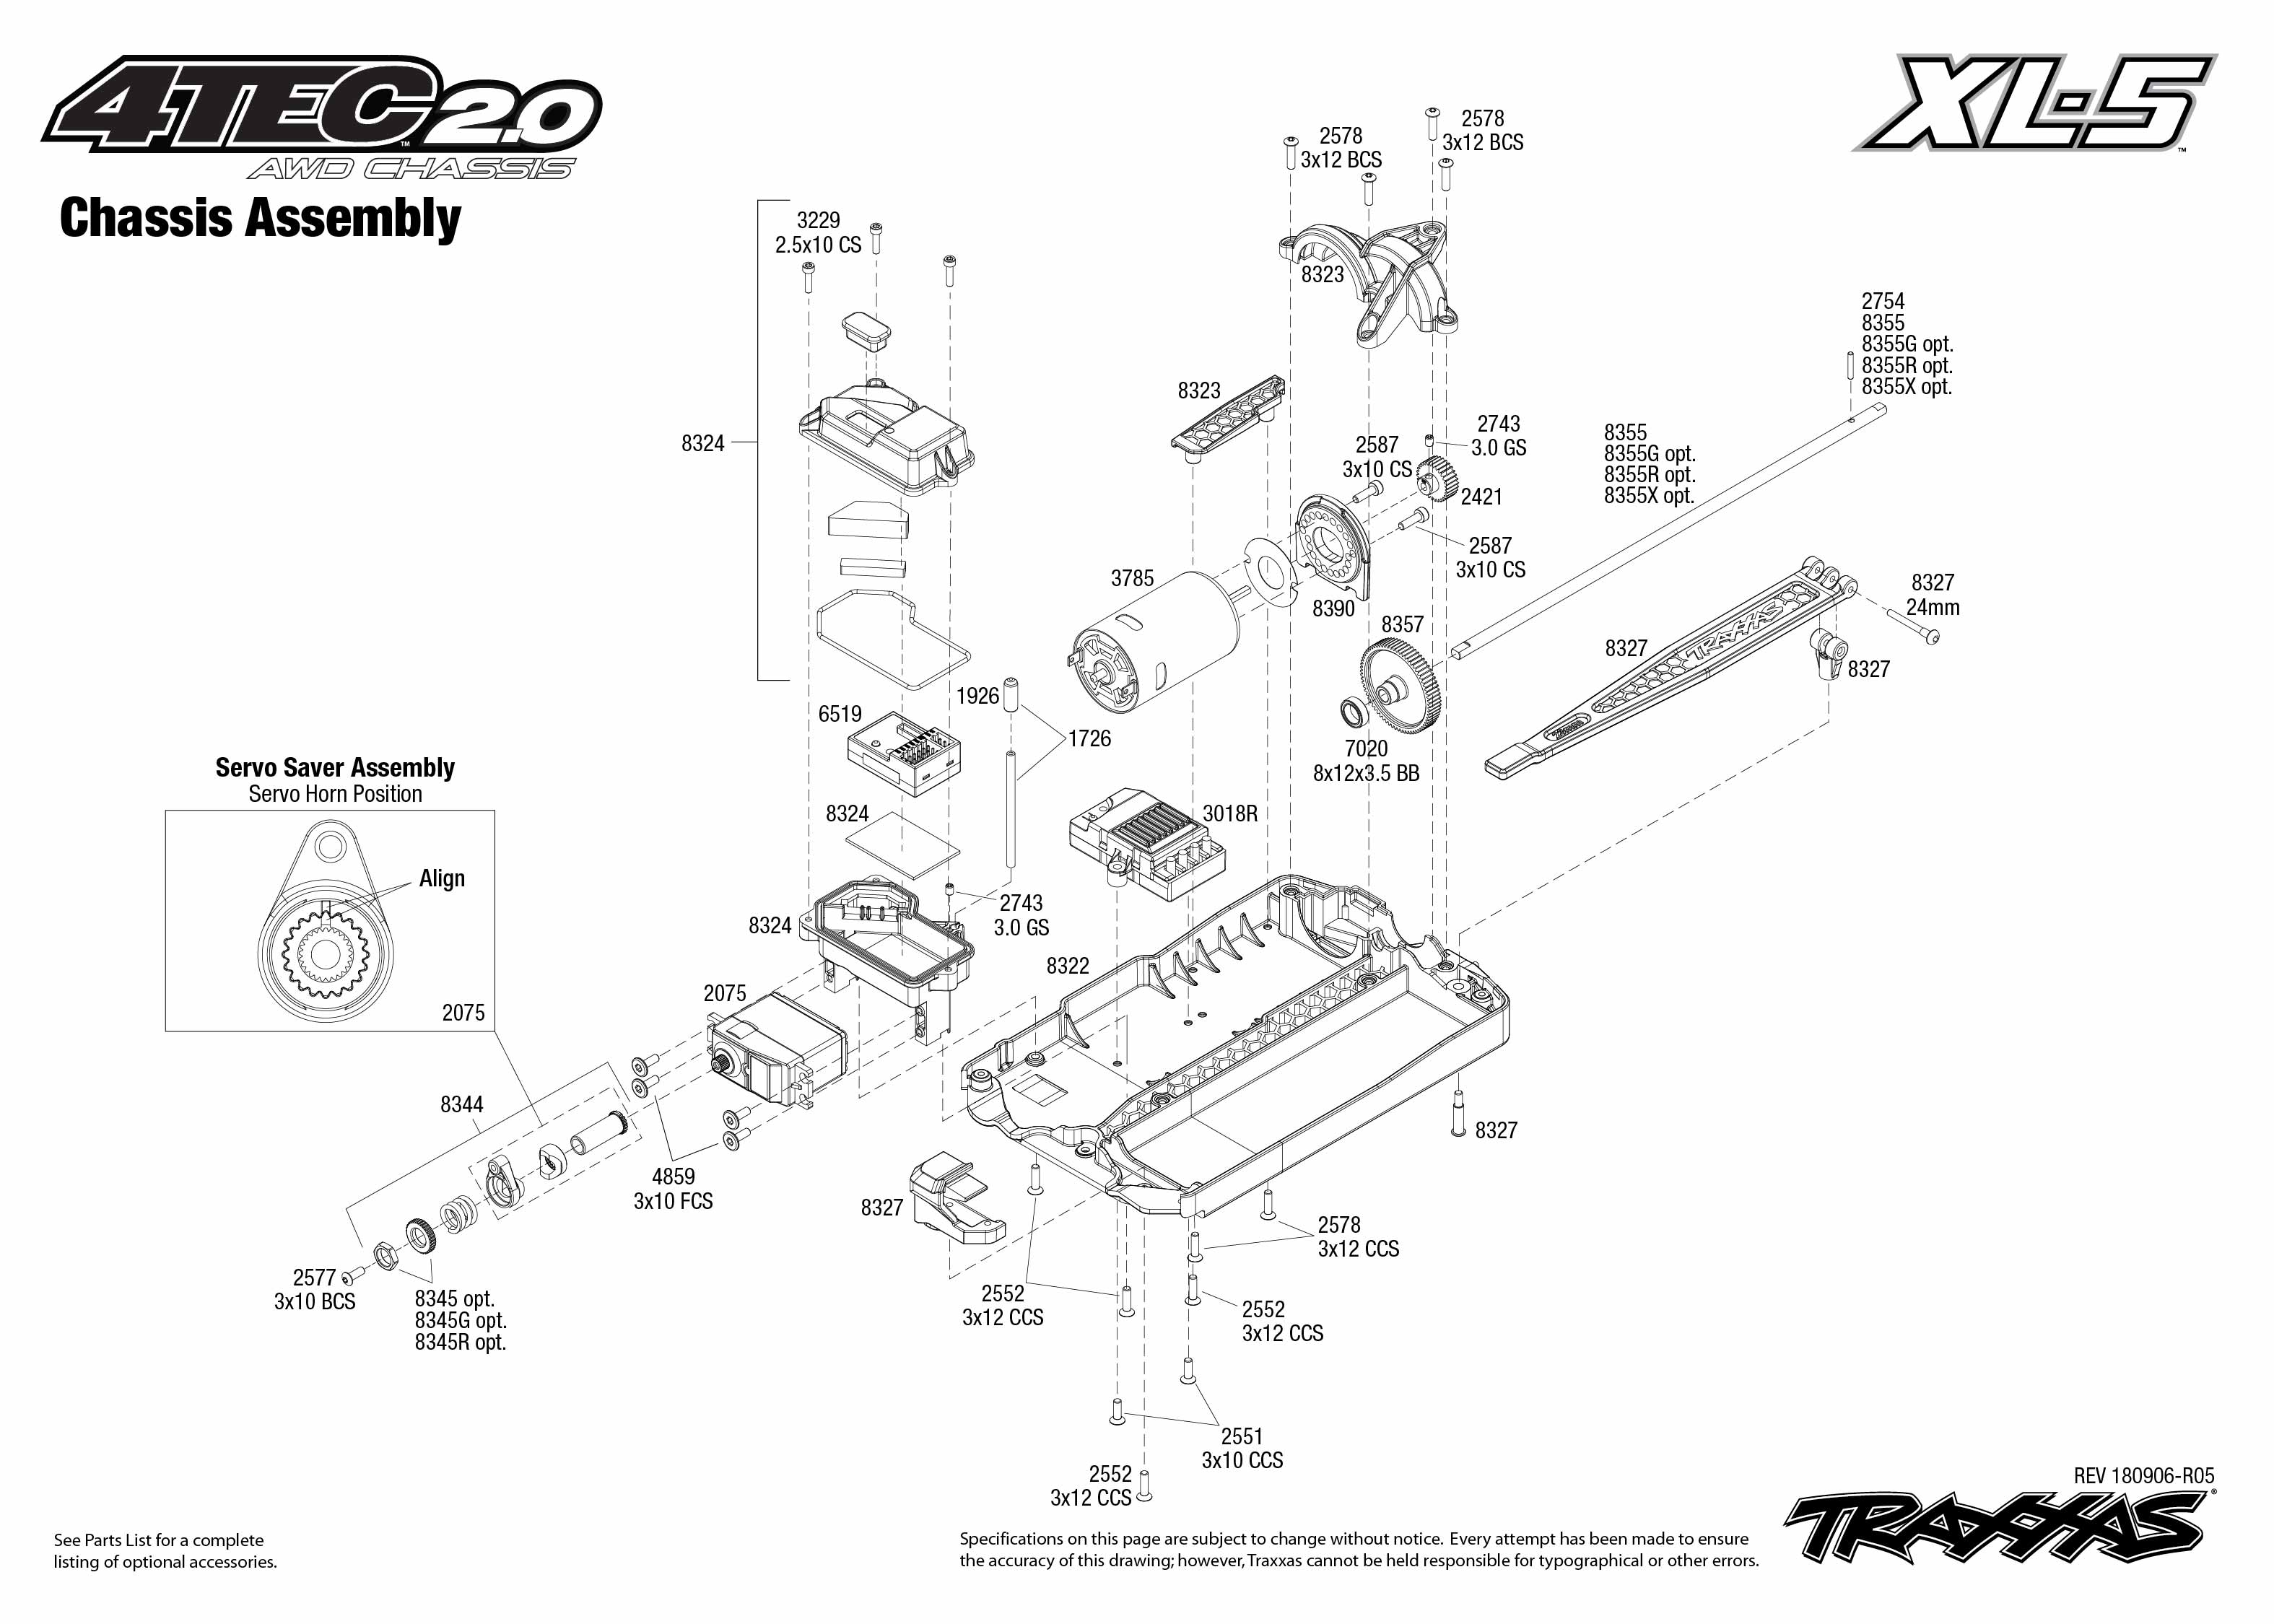 Traxxas 4-Tec 2.0 1/10 Scale AWD Chassis with TQ 2.4GHz